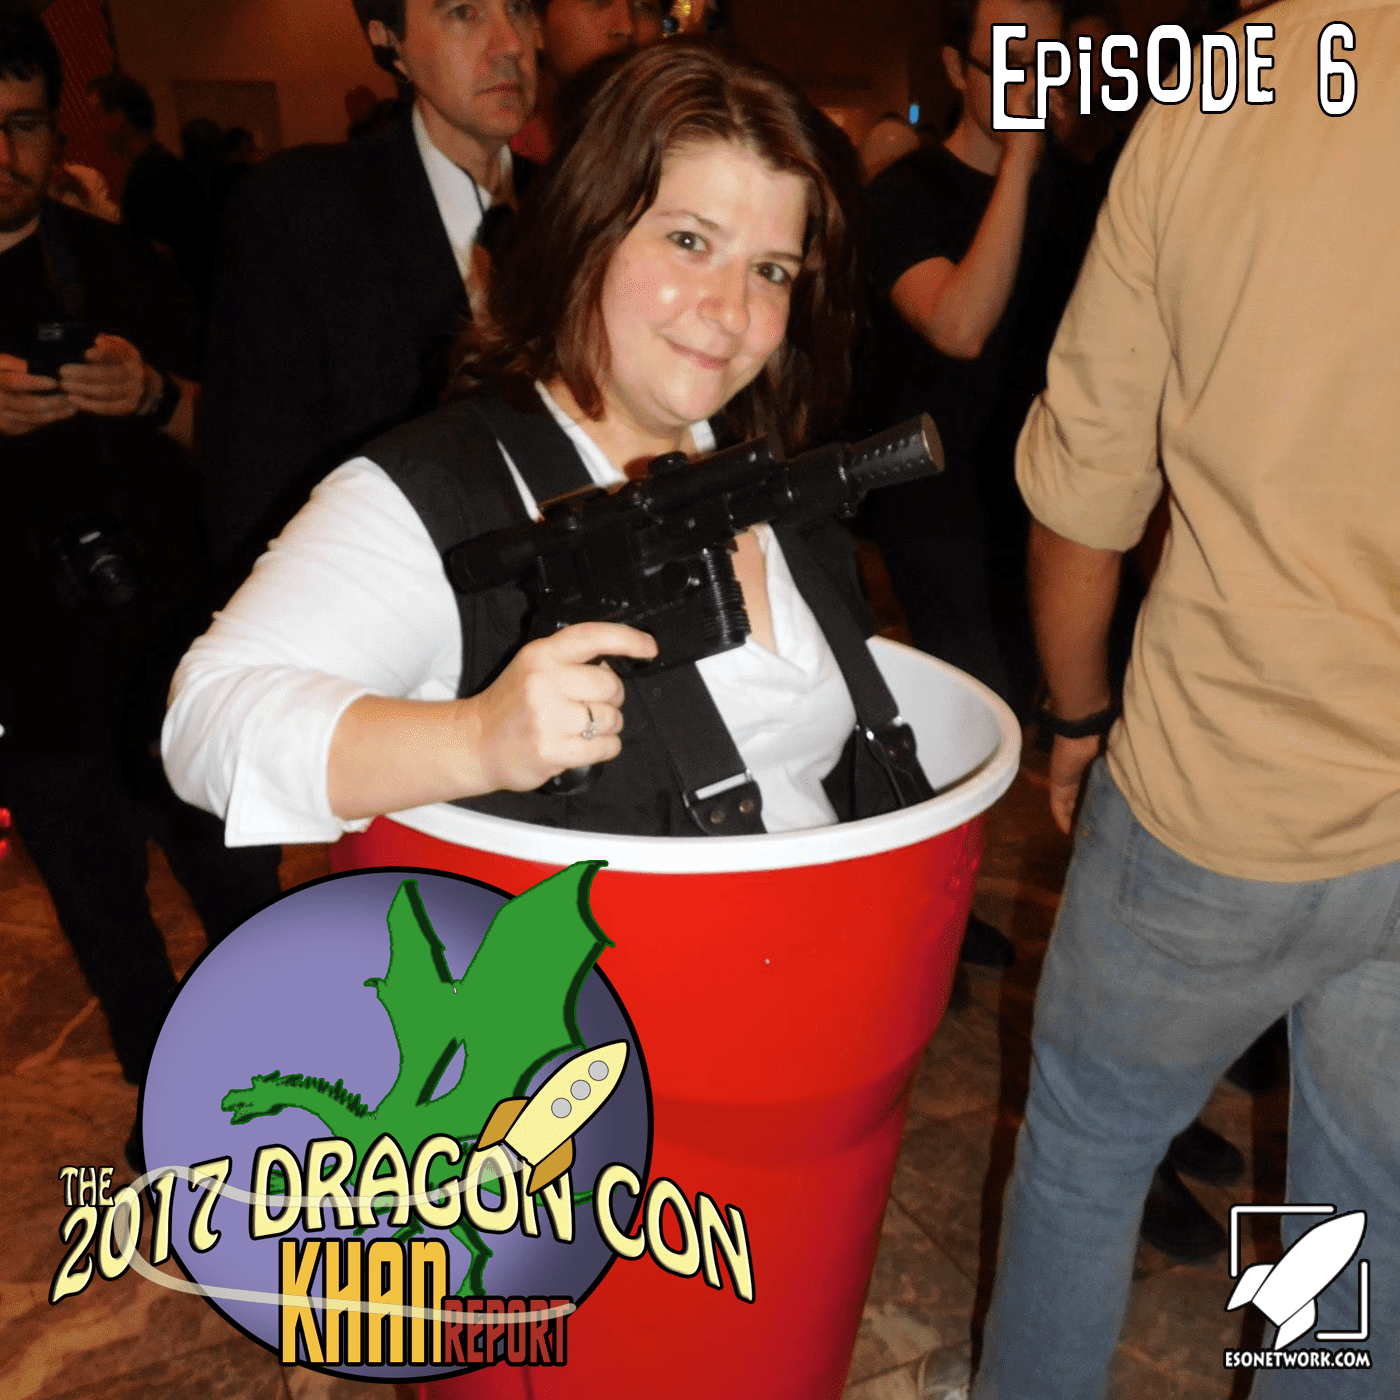 2017 Dragon Con Khan Report Ep 6